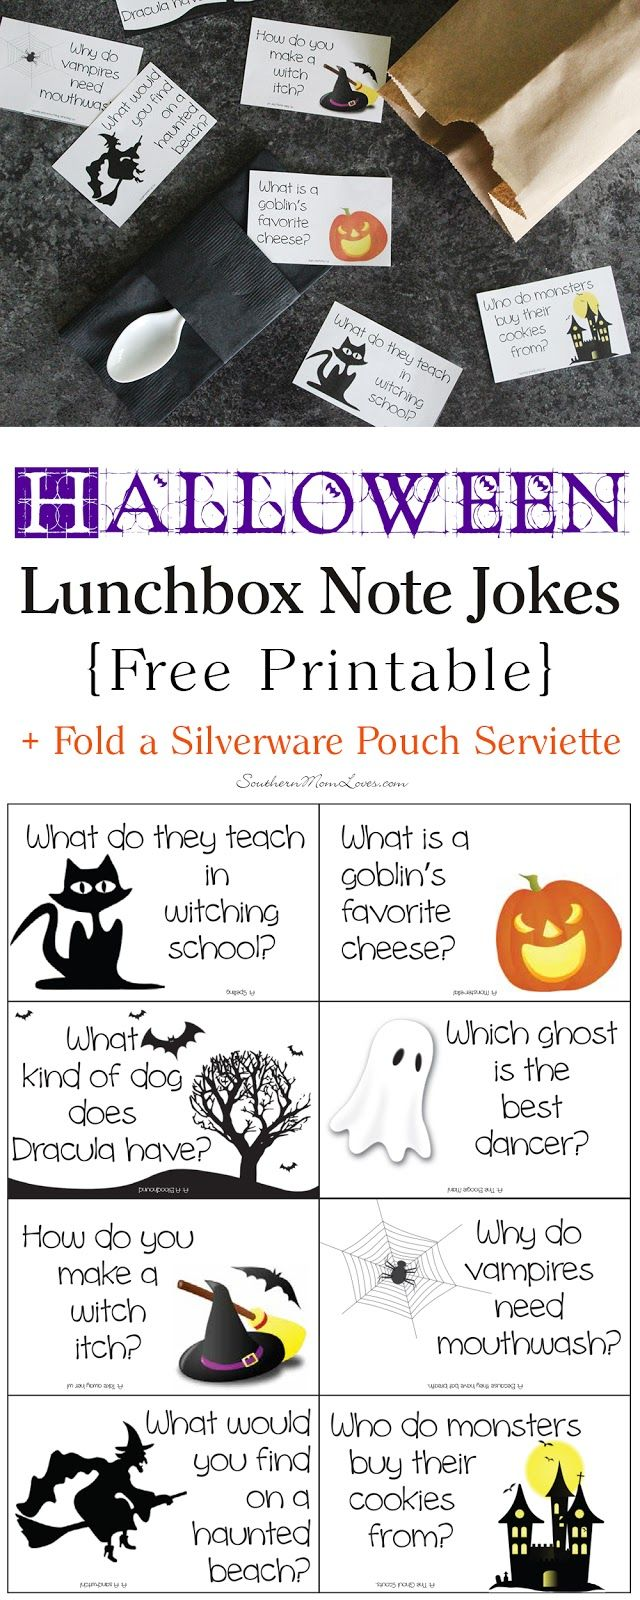 Today I've got a super-fun (and free) printable for you: Halloween Lunchbox Note Jokes! These are kid-friendly jokes that you can put in your child's lunchbox to give them a giggle during their day. I'll also show you how to fold a silverware pouch serviette that will fit their utensils and you can also tuck their note into so it doesn't get lost in the bottom of their lunchbox.